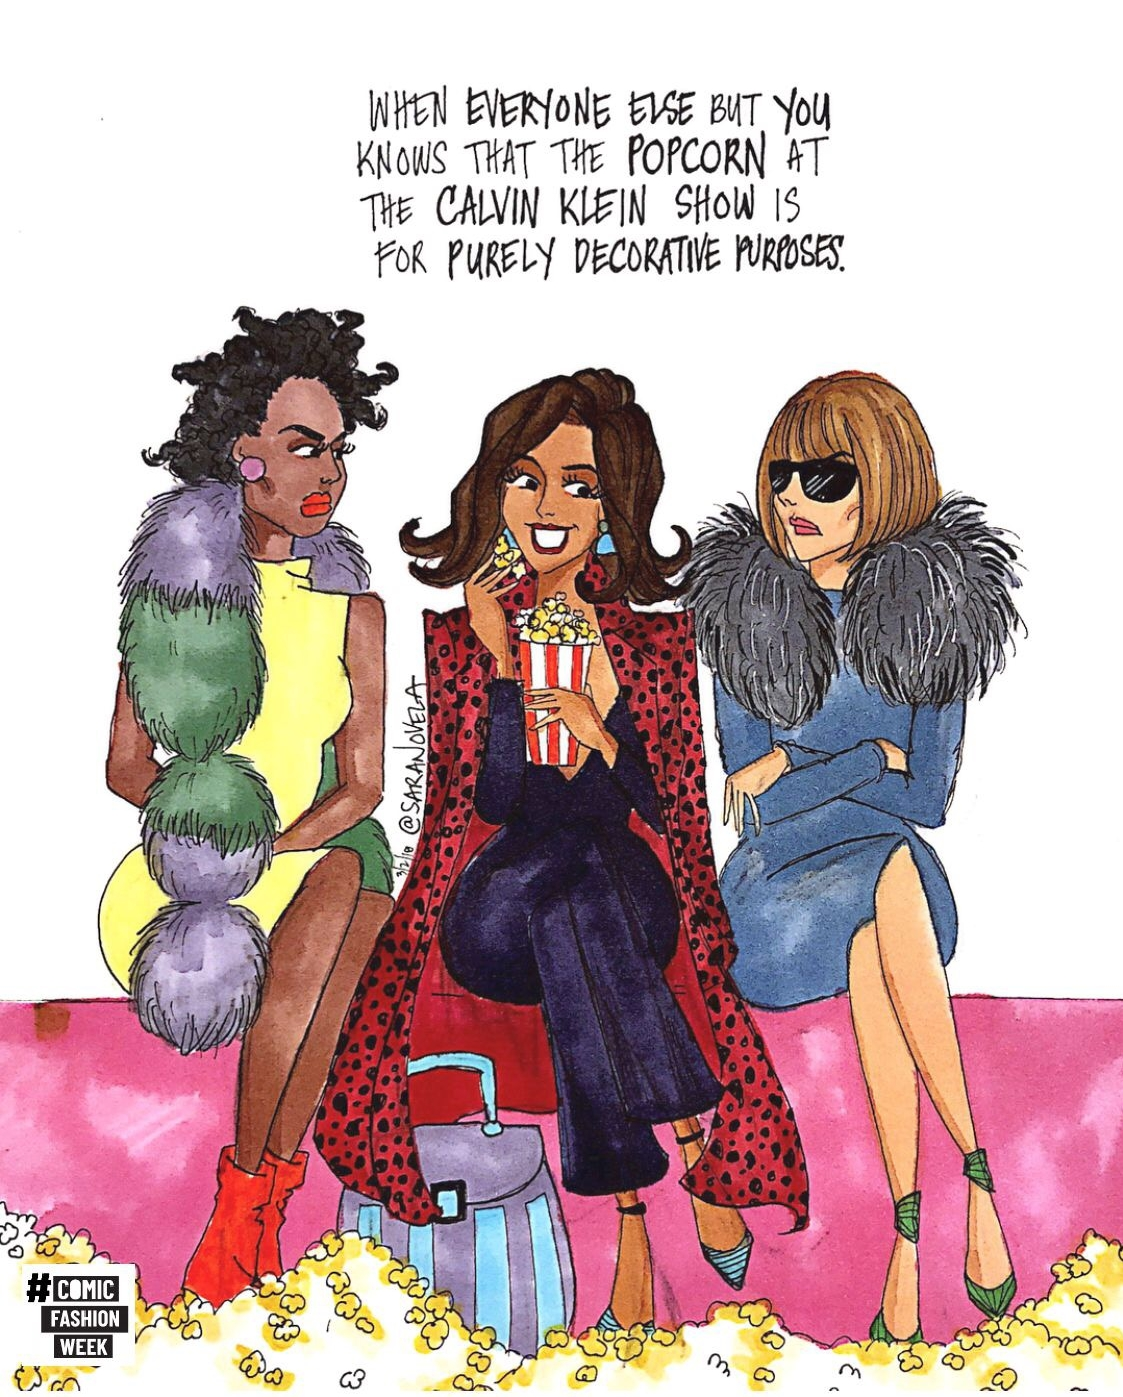 comicfashion week - Two illustrators, seven days, fourteen comics poking fun at Fashion Week Fall/Winter 2018.A collaboration with Mexico-born, Amsterdam-based fashion journalillustrator Talia Cu.